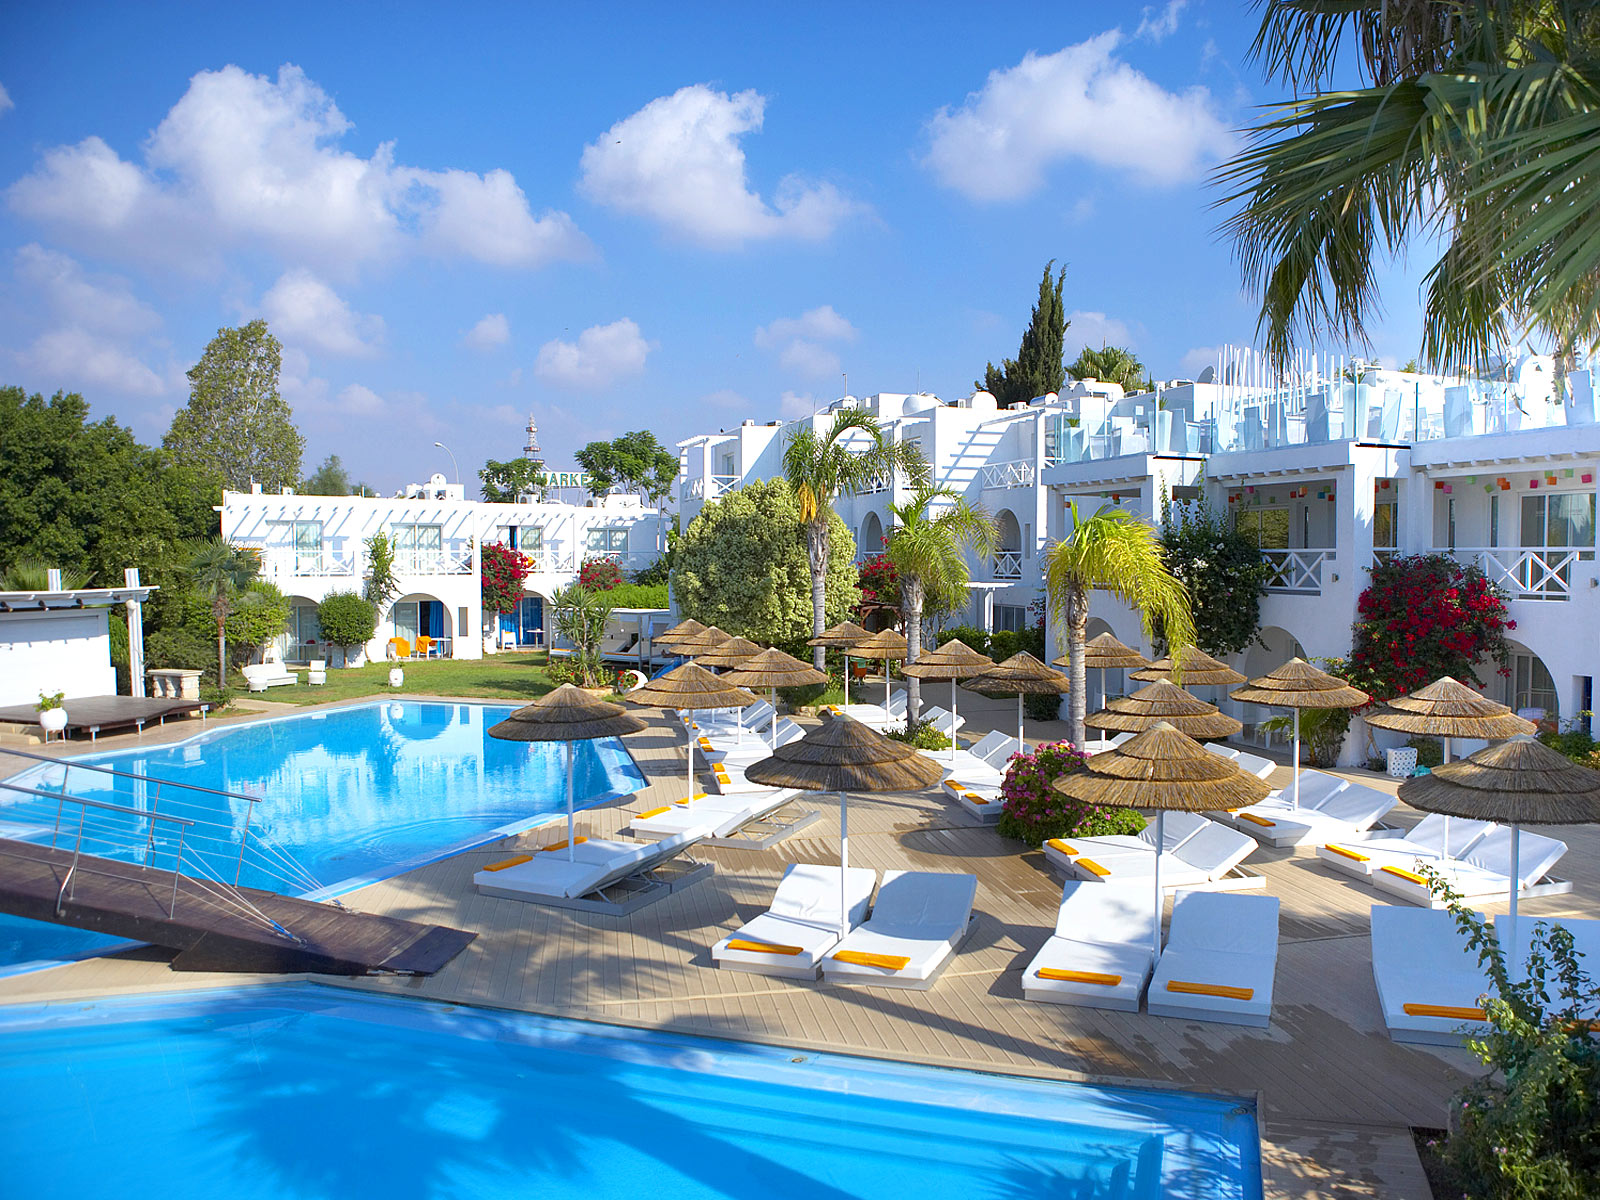 Ayia Napa - resort in Cyprus. Attractions, hotels 87